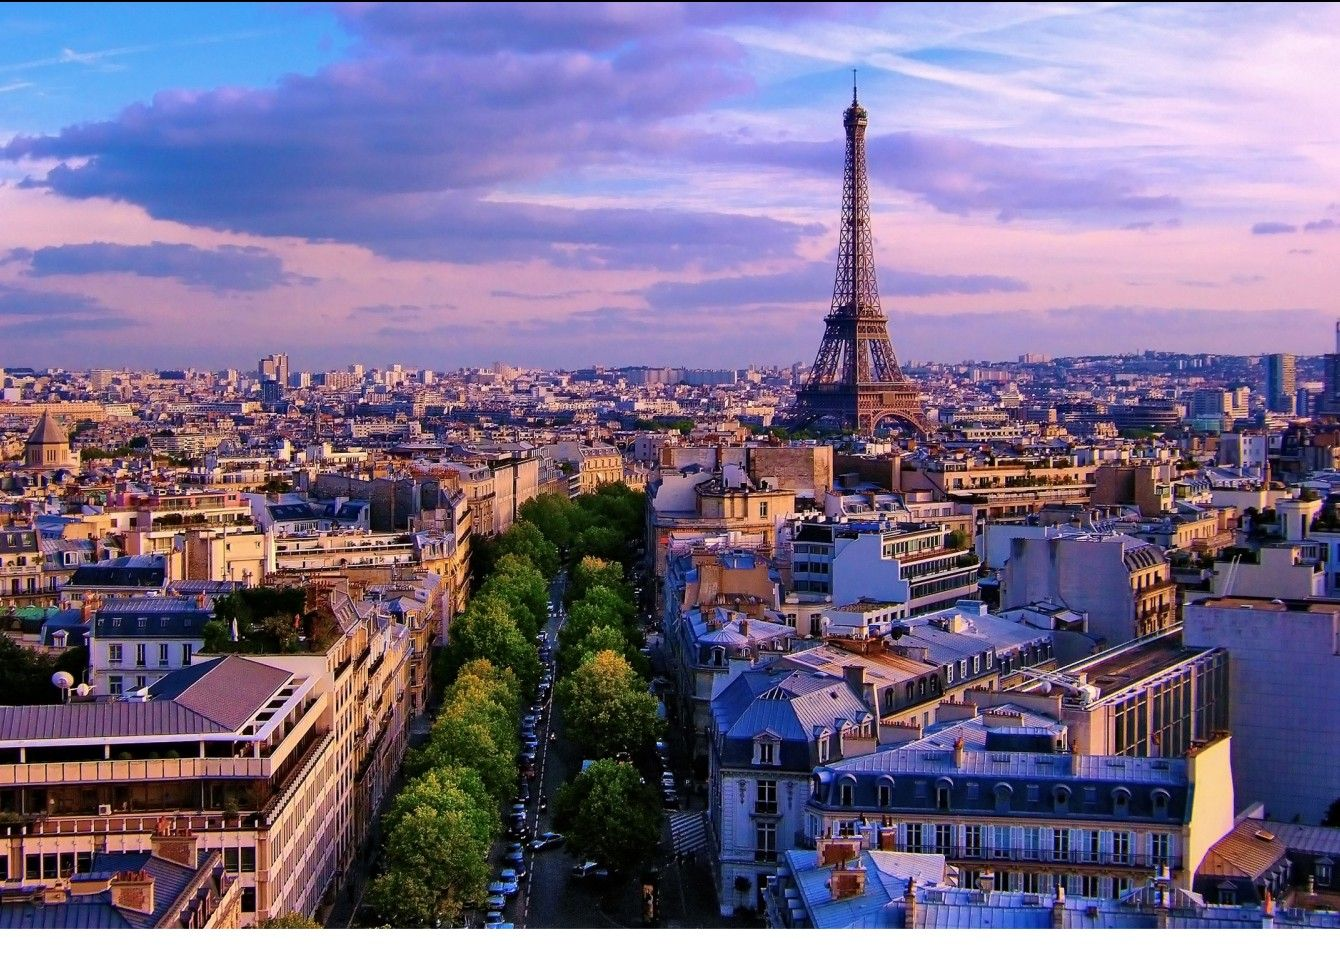 The Eiffel Tower in Paris and its image in the minds of people